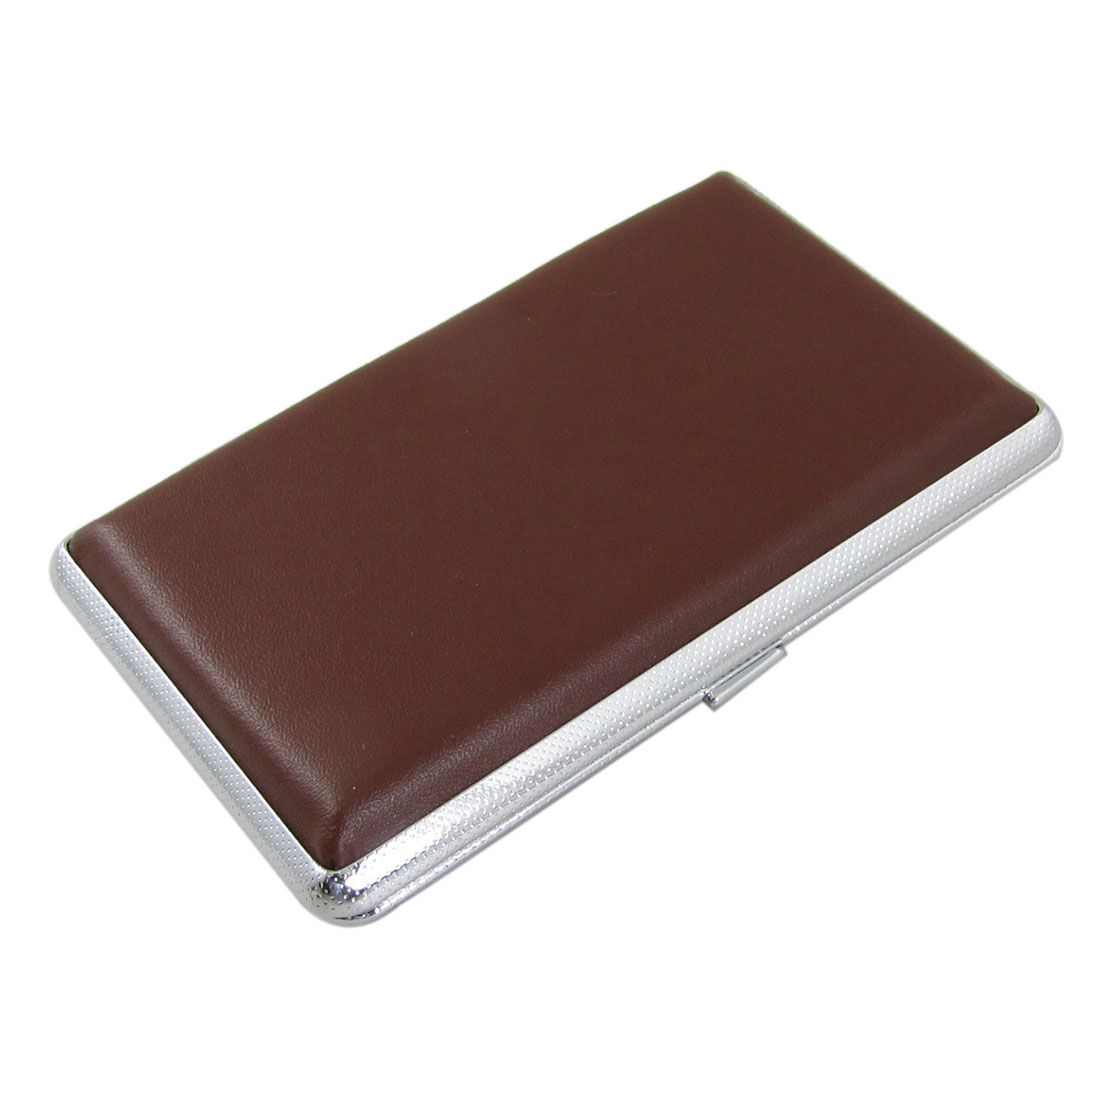 Classical Brown Faux Leather Covered Box Case Holder for 10 Cigarettes